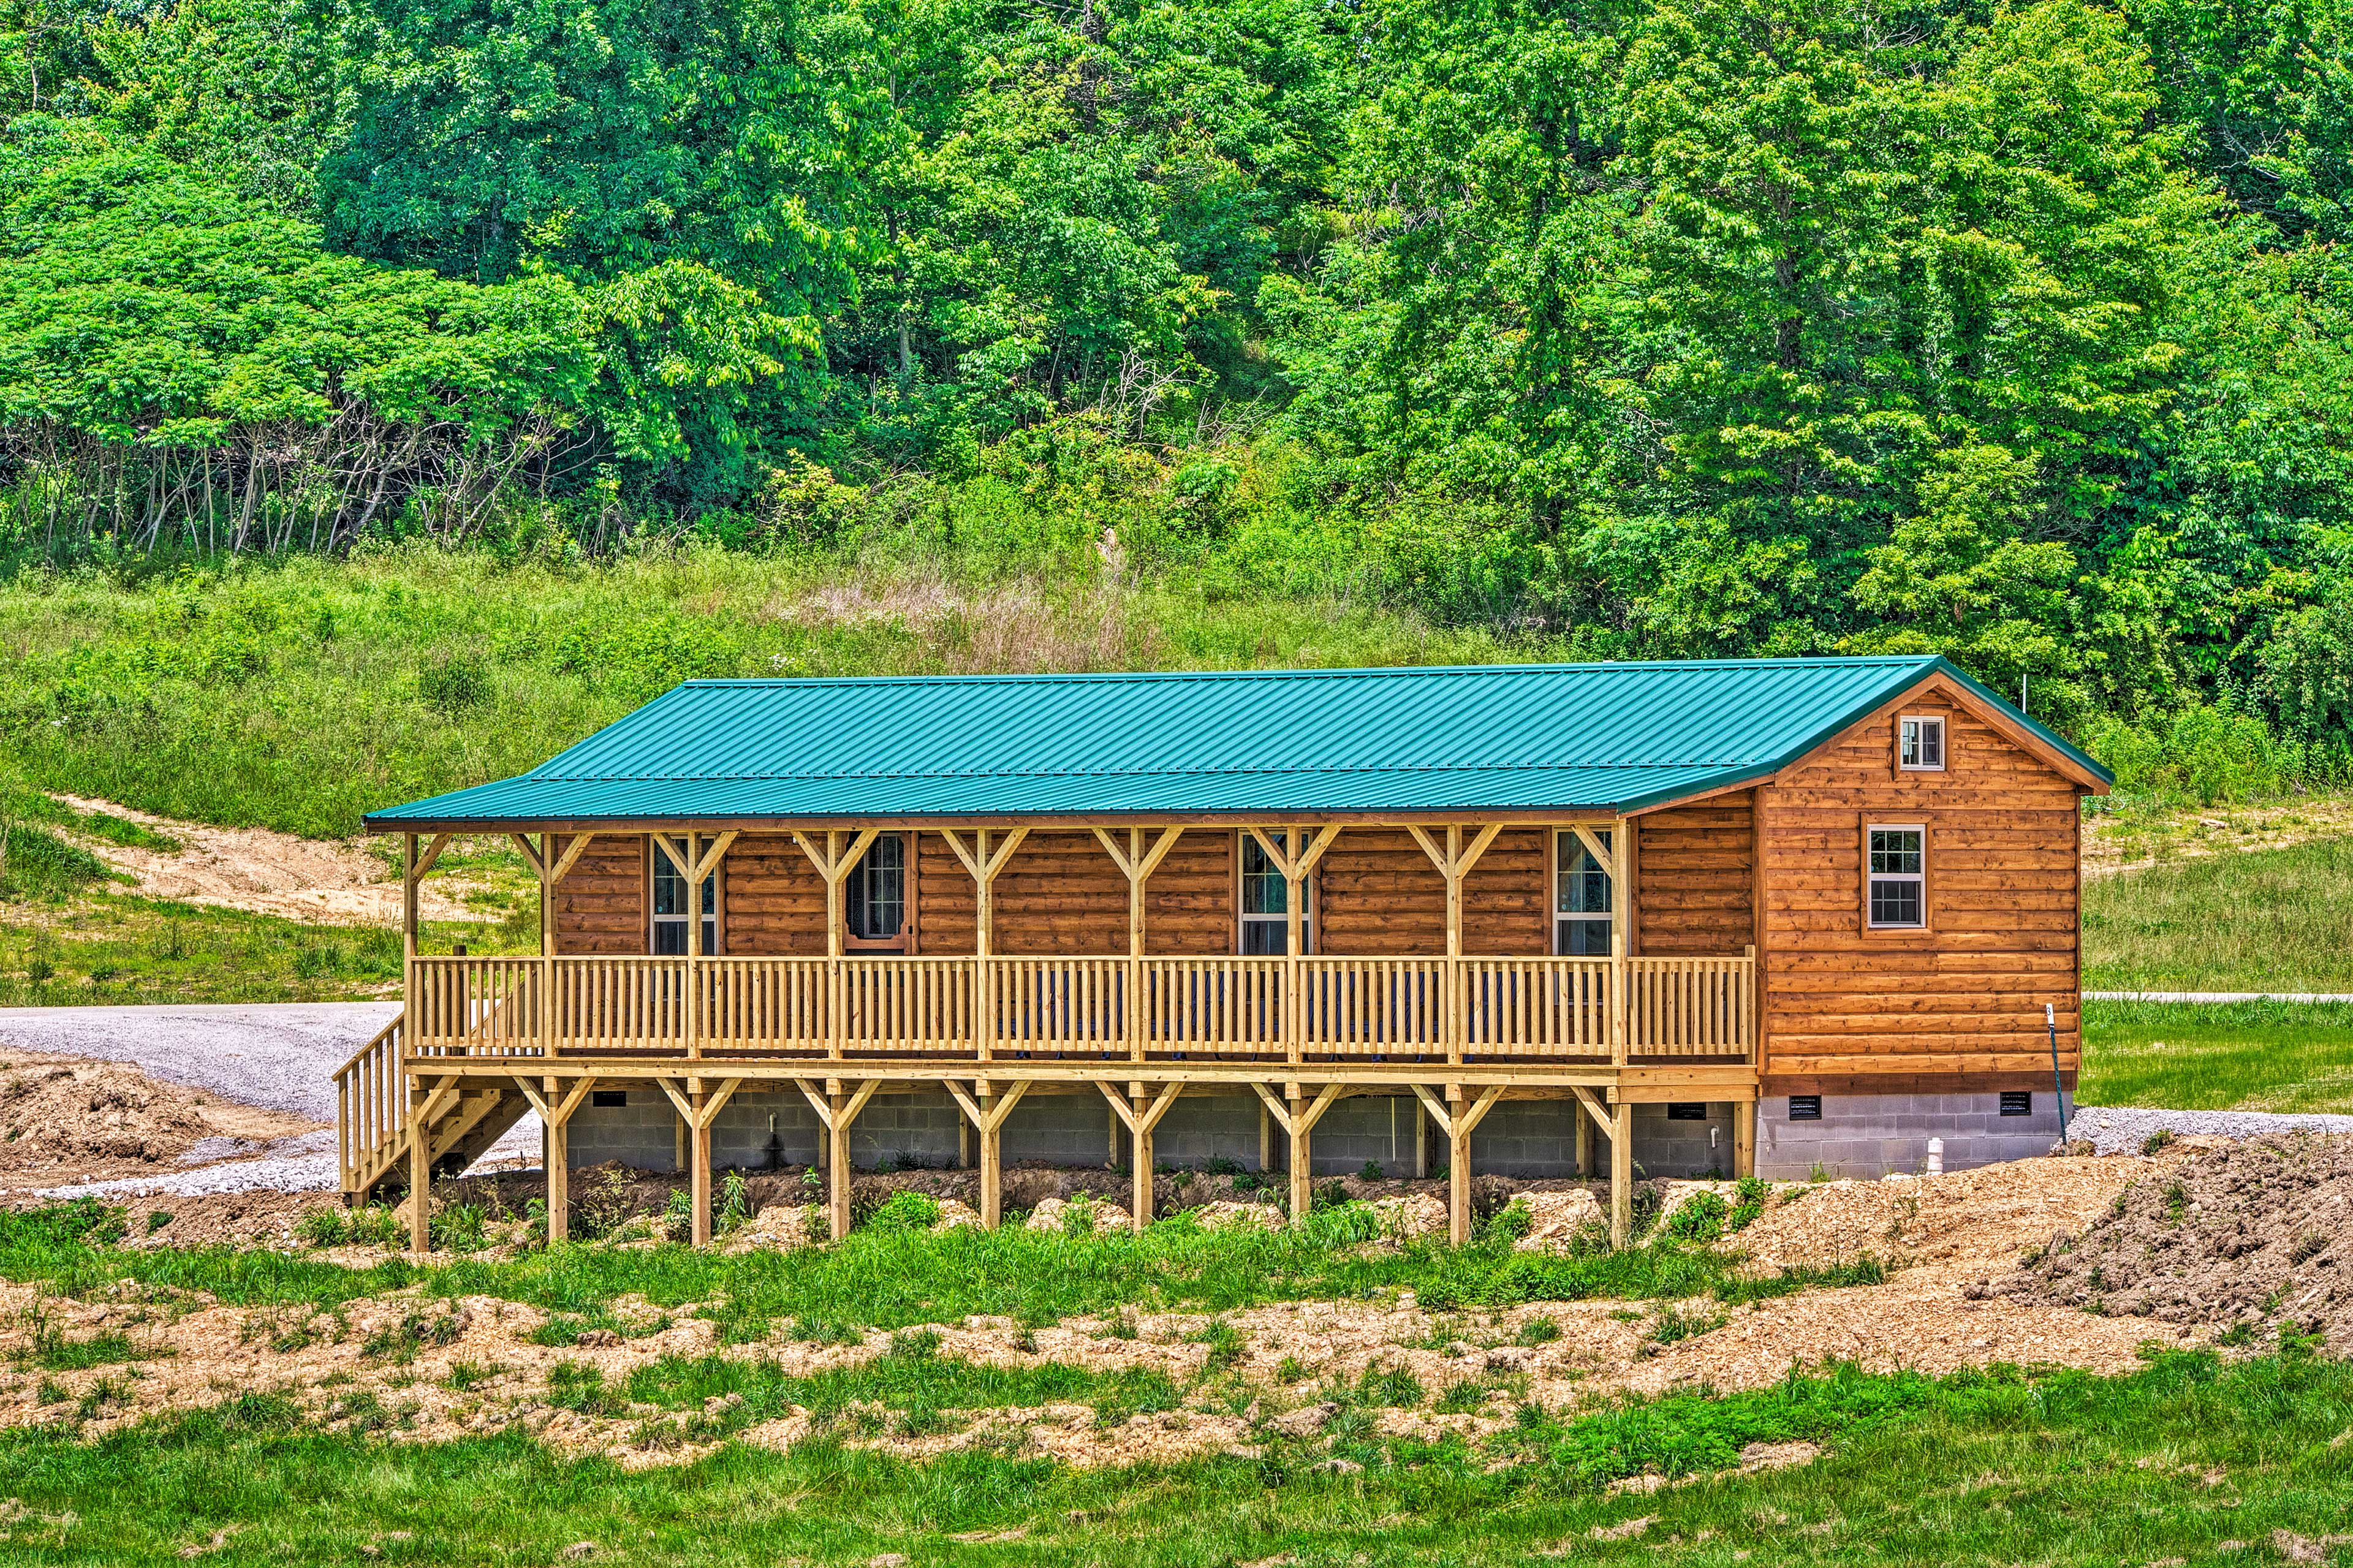 Enjoy outdoors relaxation at this log cabin.